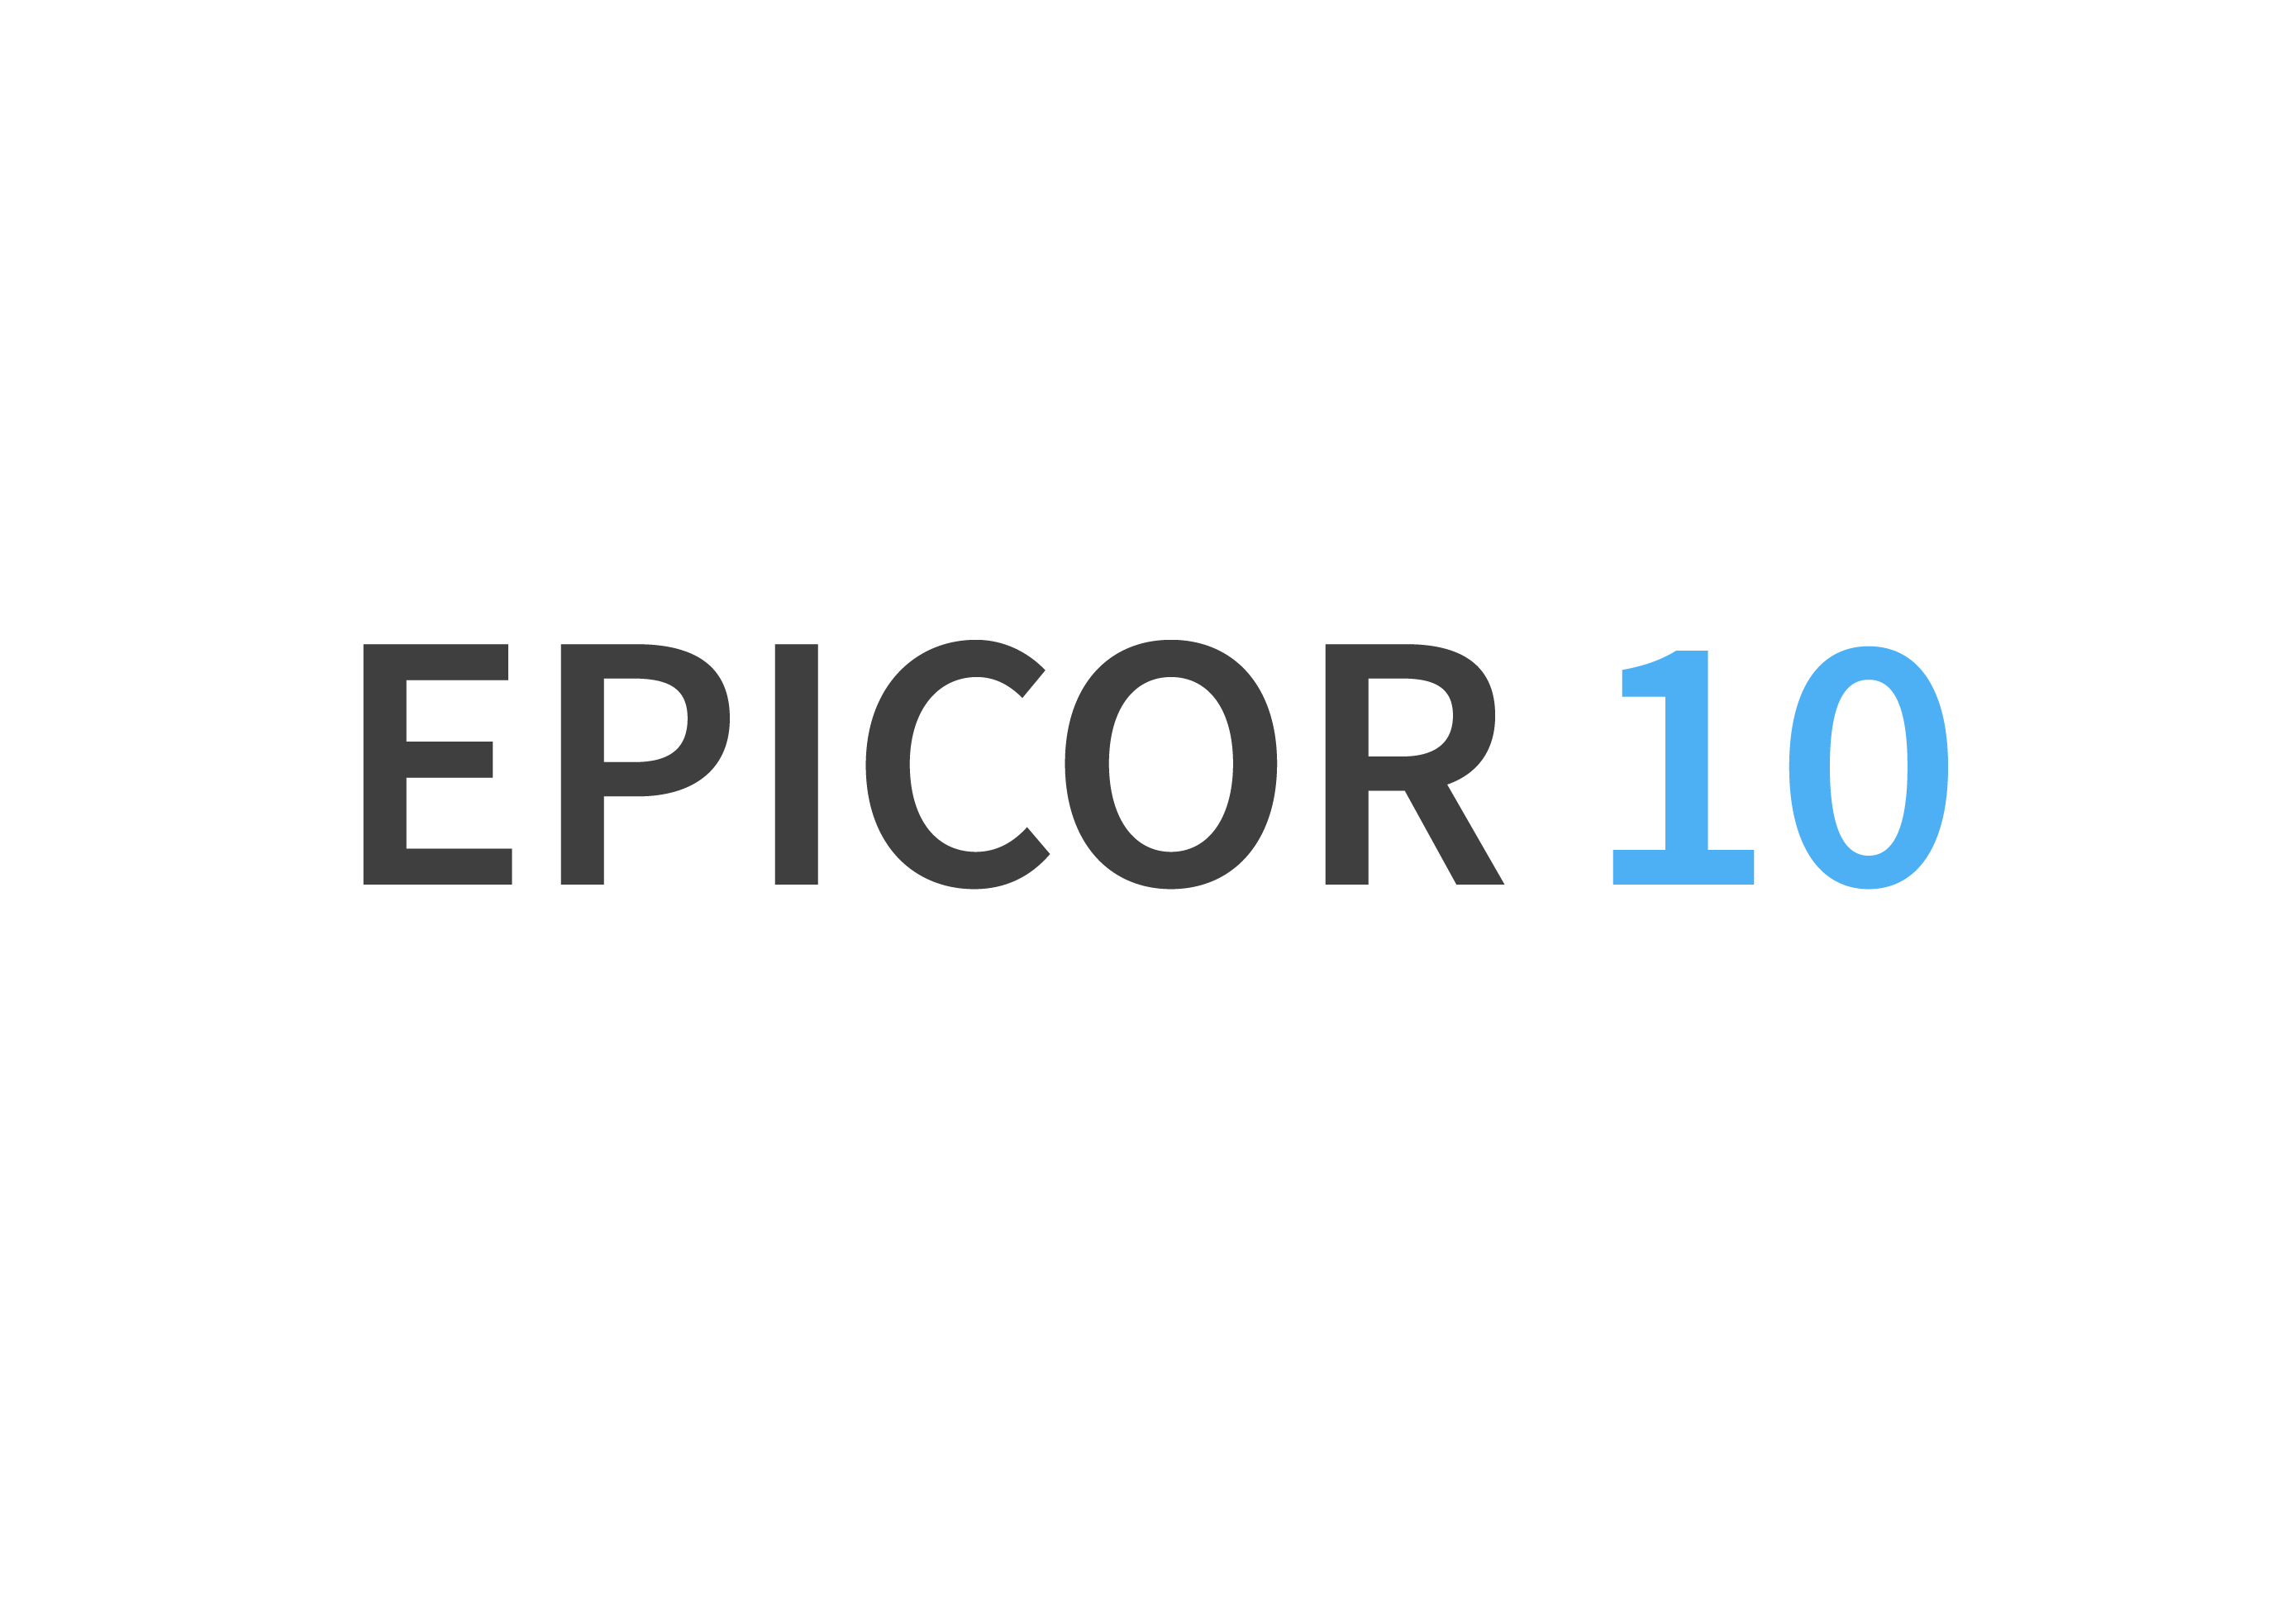 epicor 10 payment processing